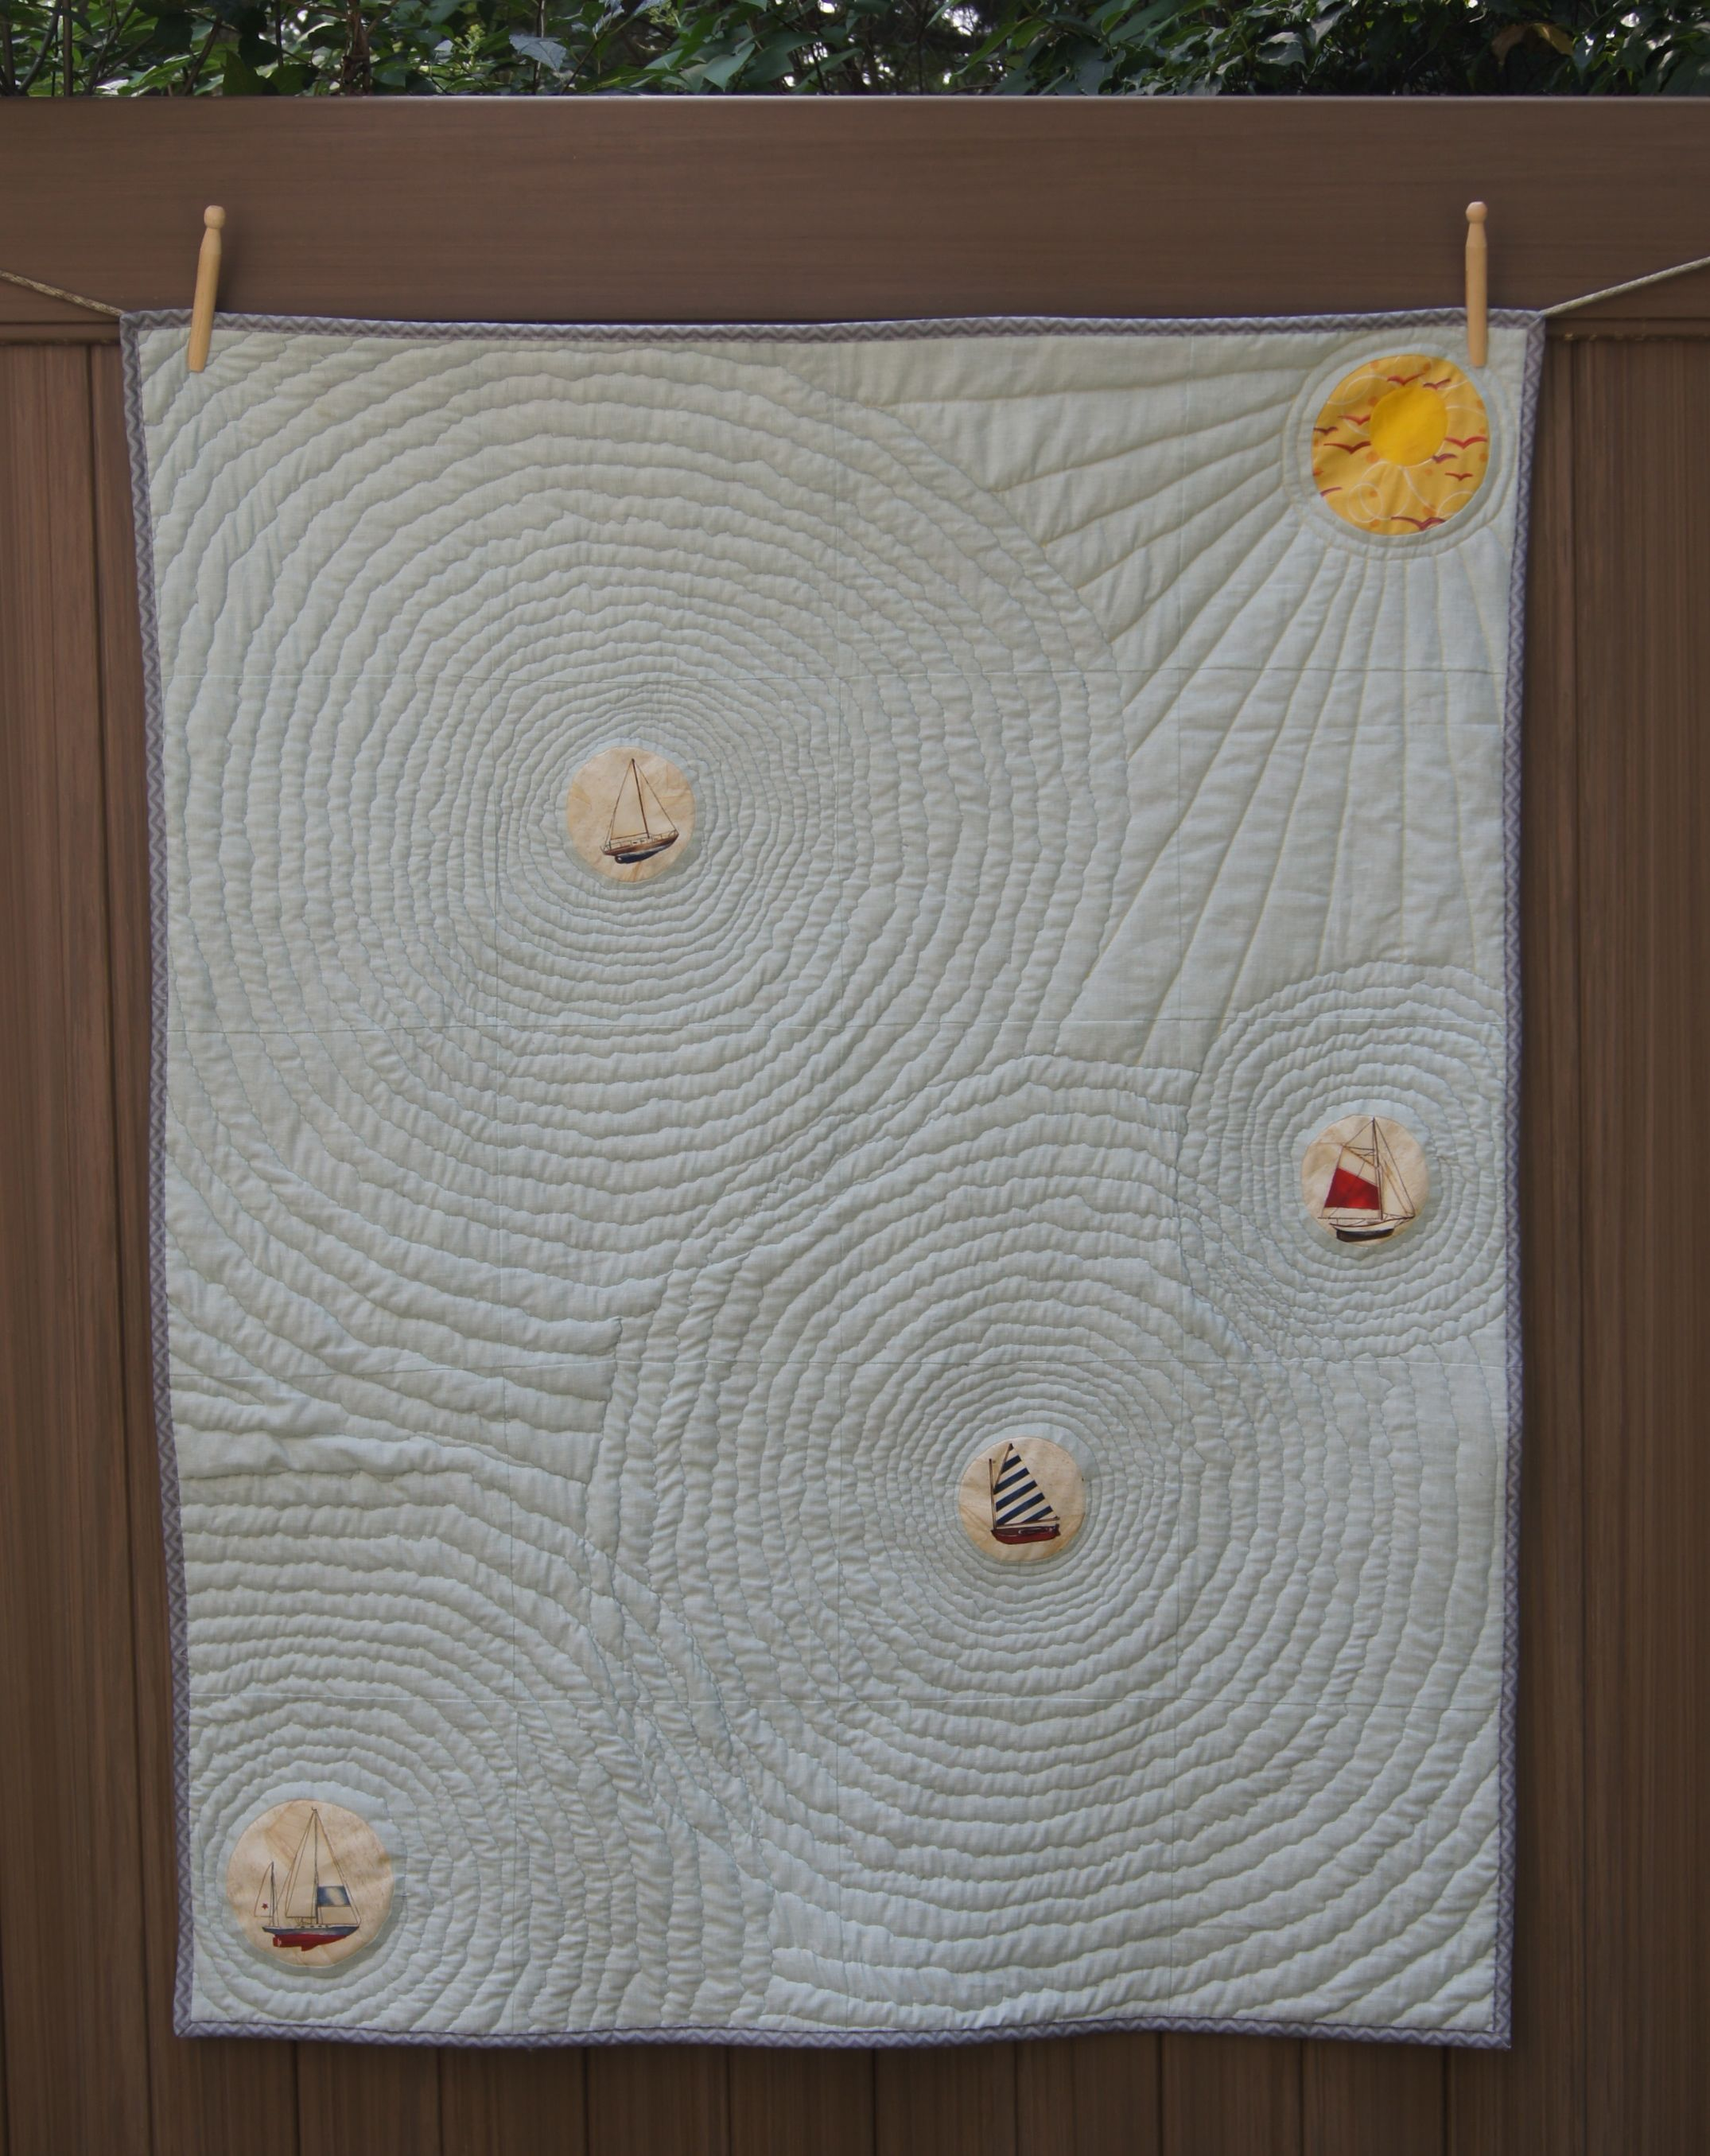 Wavy free motion quilting